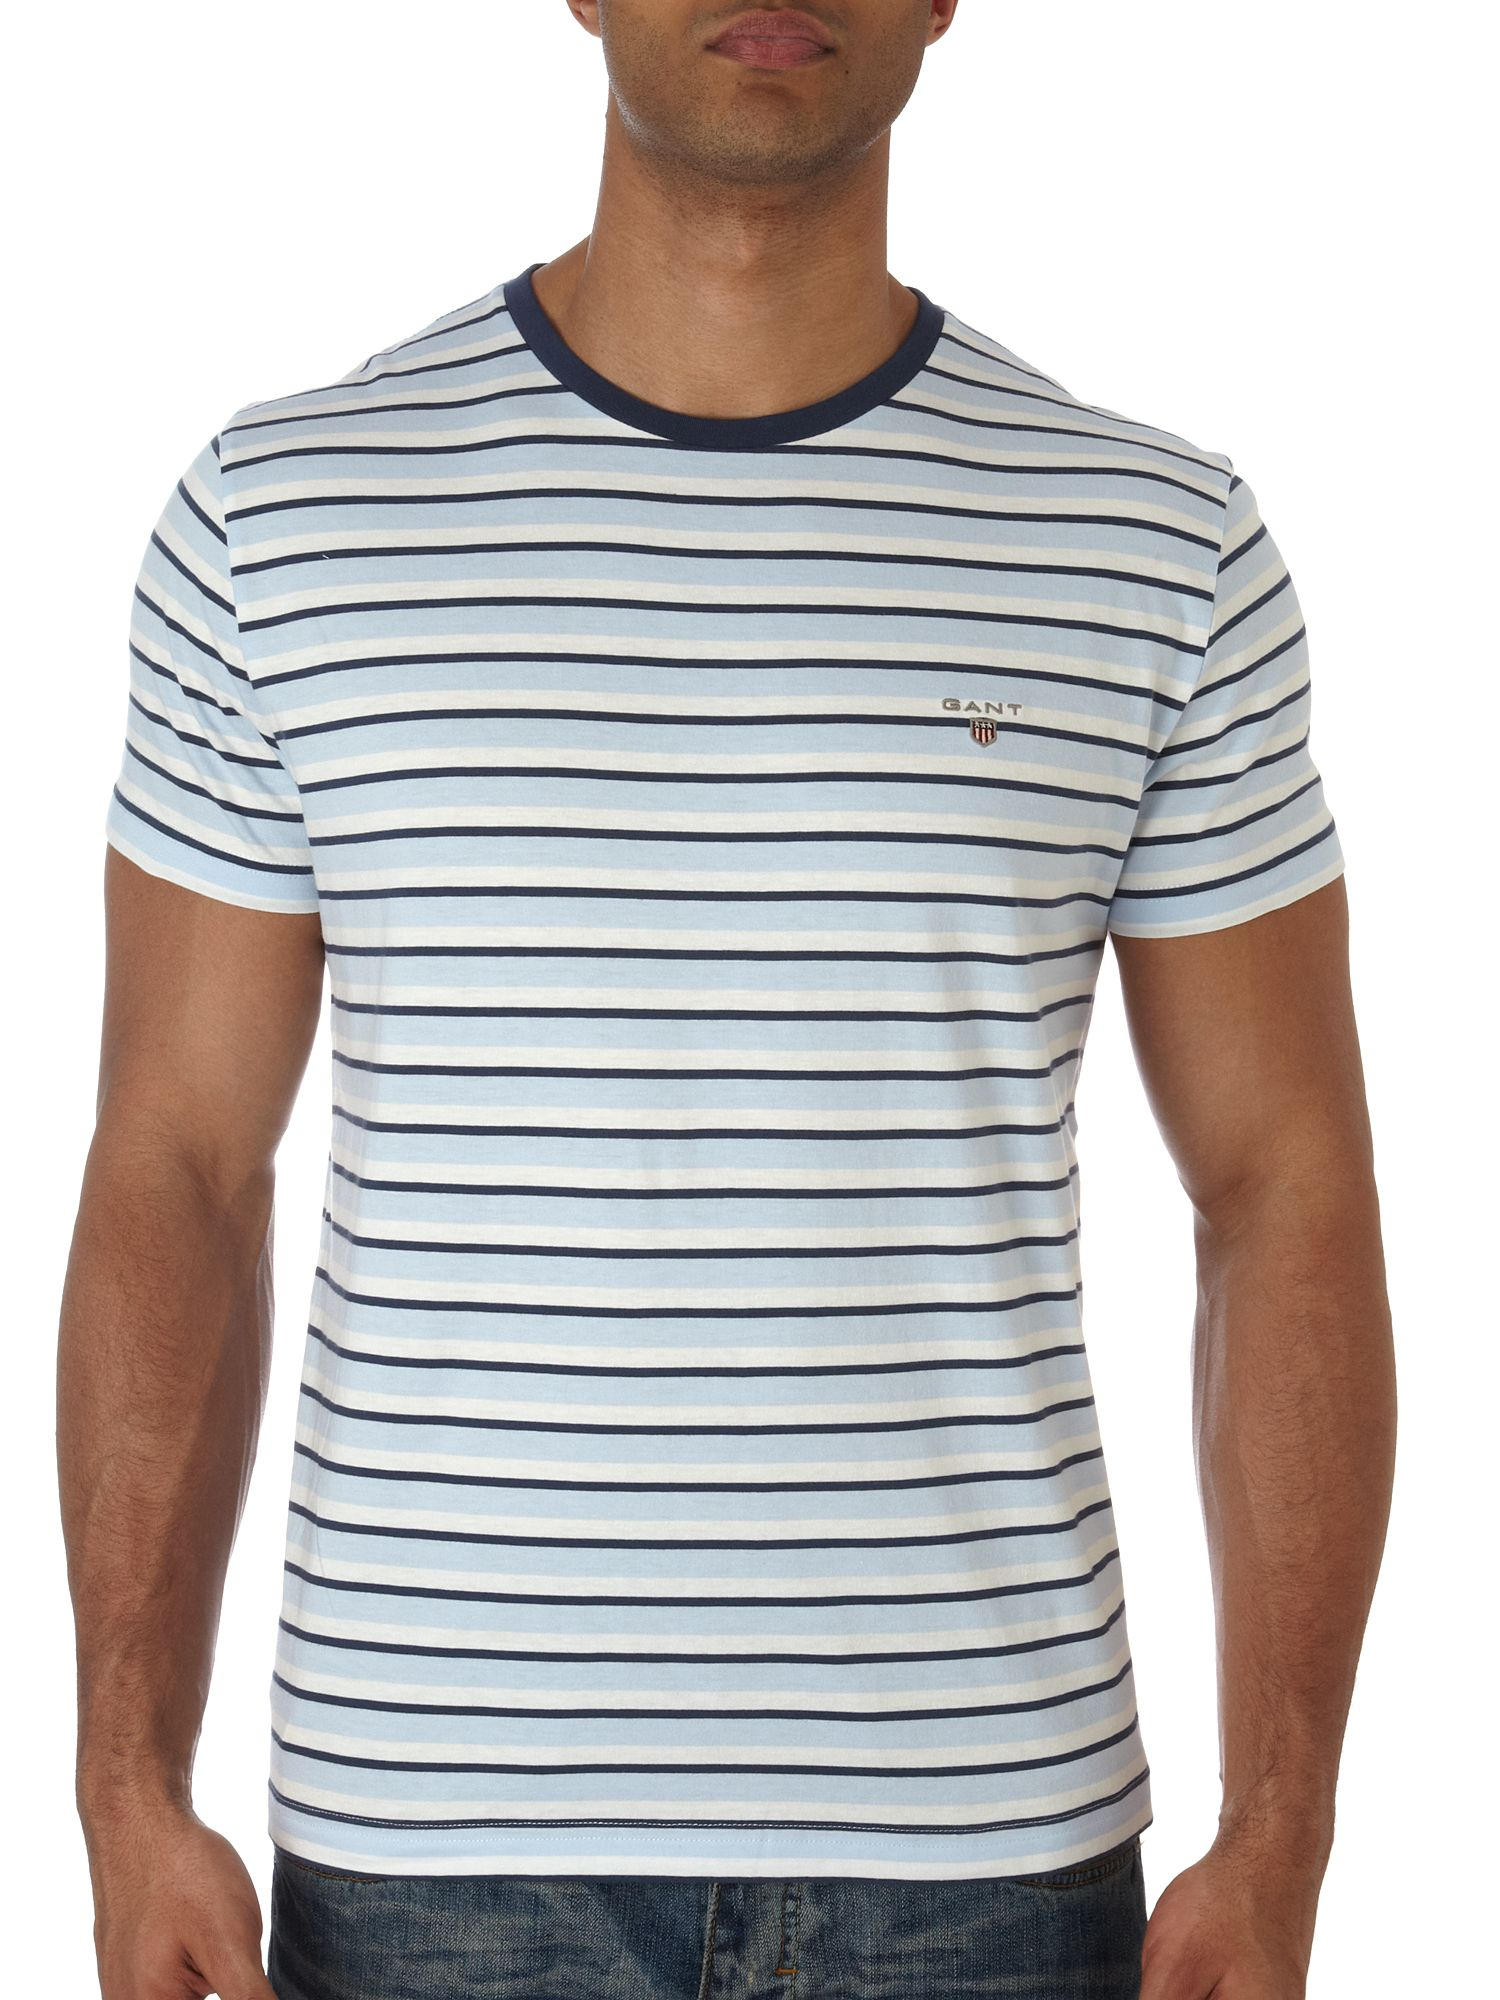 Gant Breton striped crew neck T-shirt Sky Blue product image